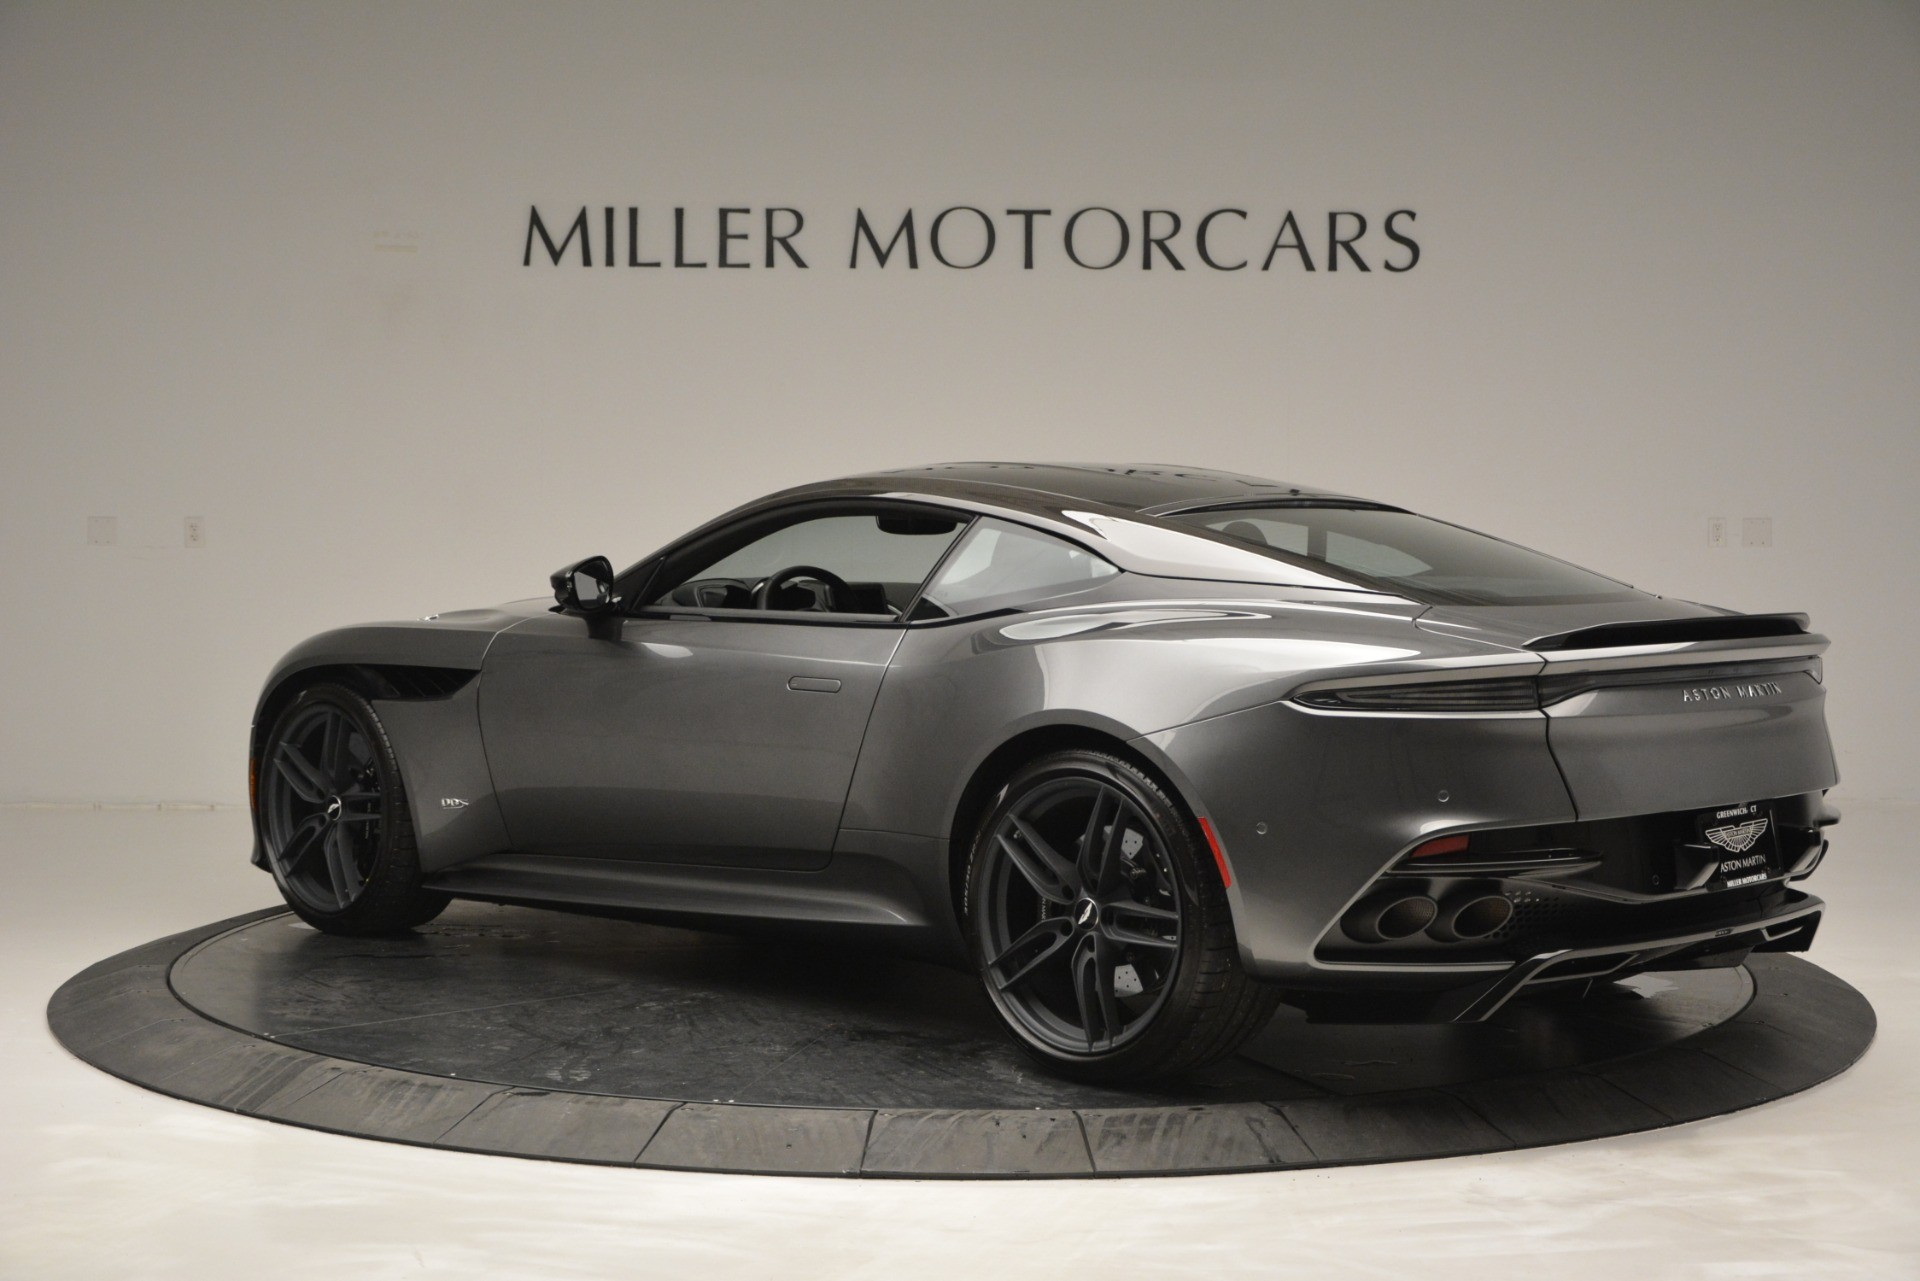 New 2019 Aston Martin DBS Coupe For Sale In Westport CT 2917 p4